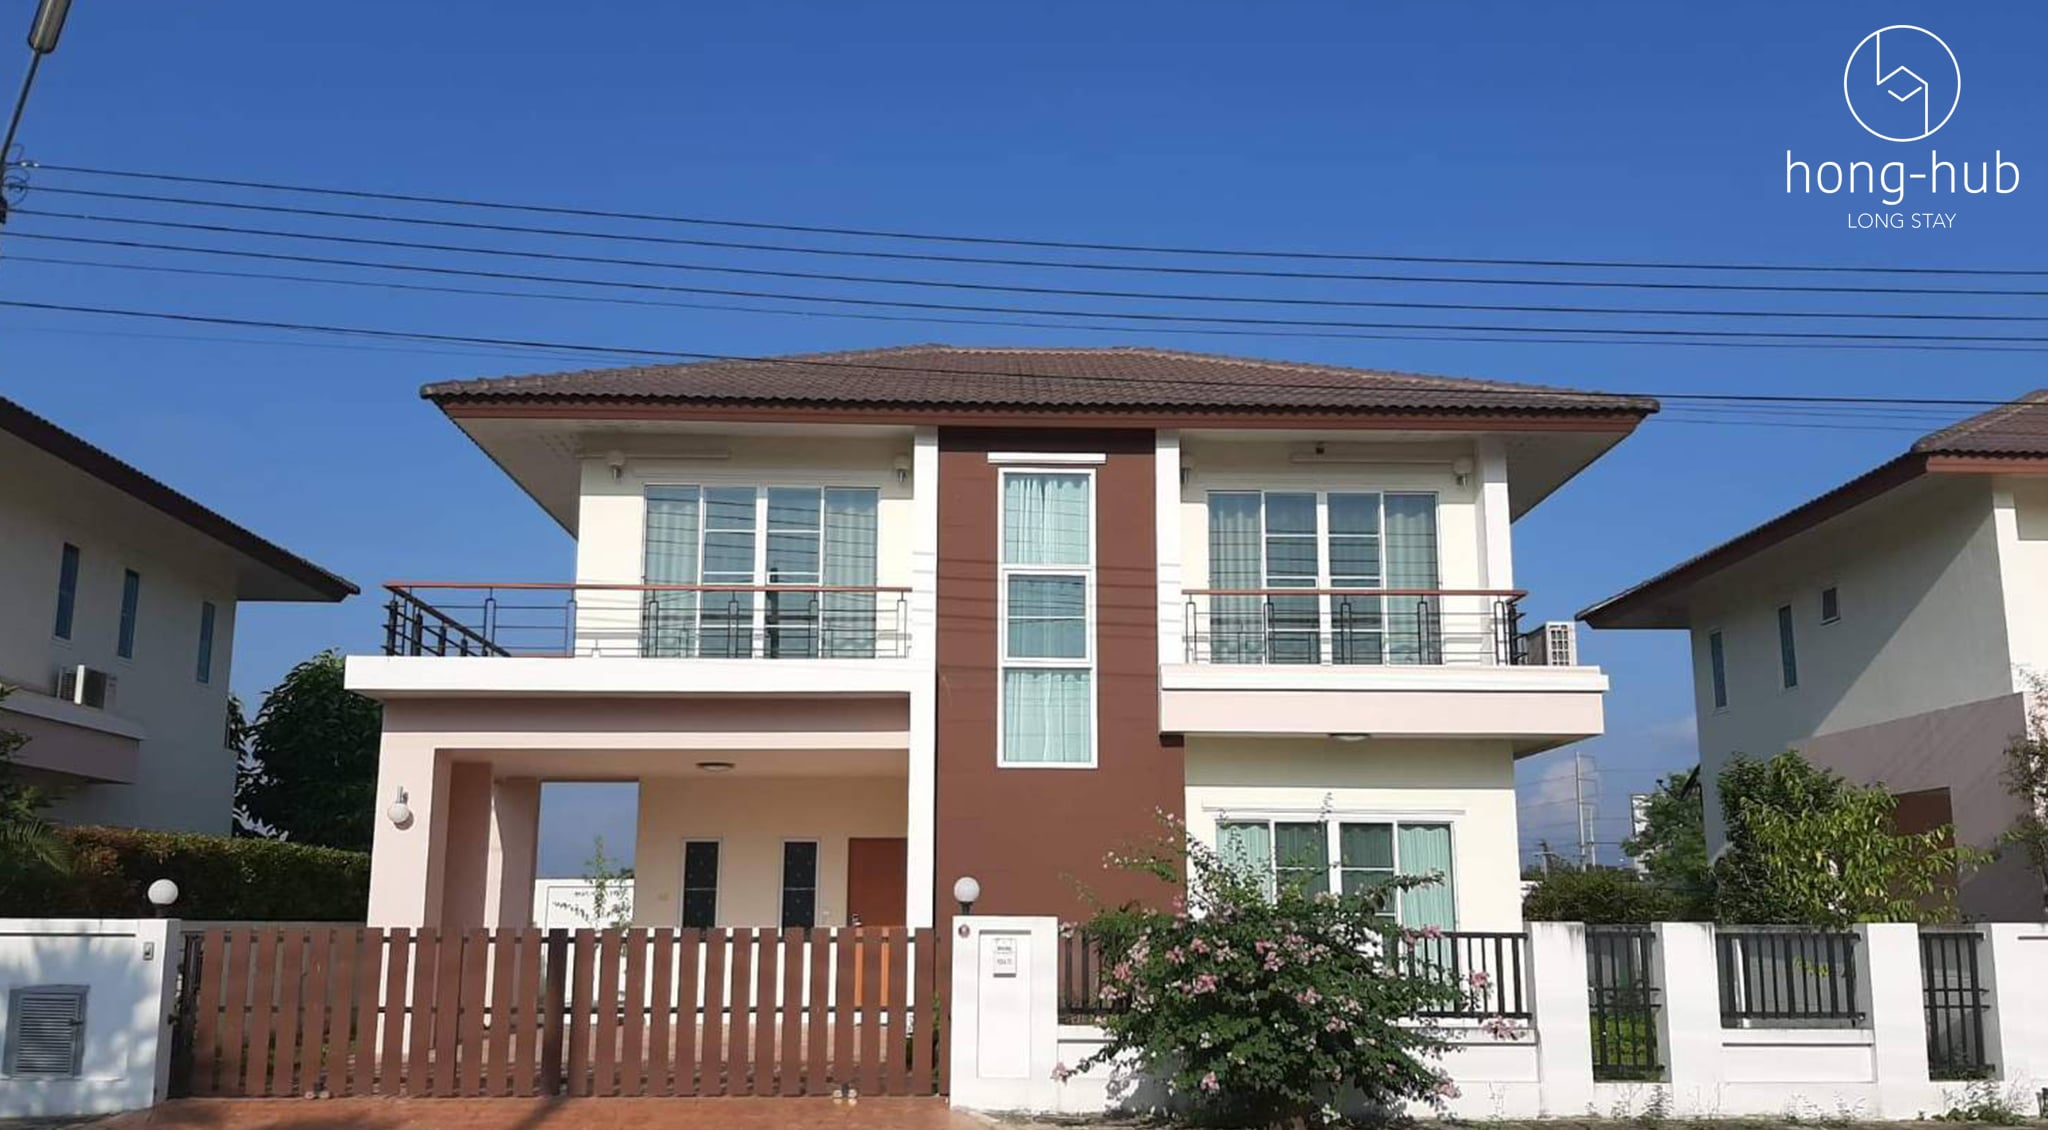 3-Bedroom Family House near Kad Farang Village For SALE